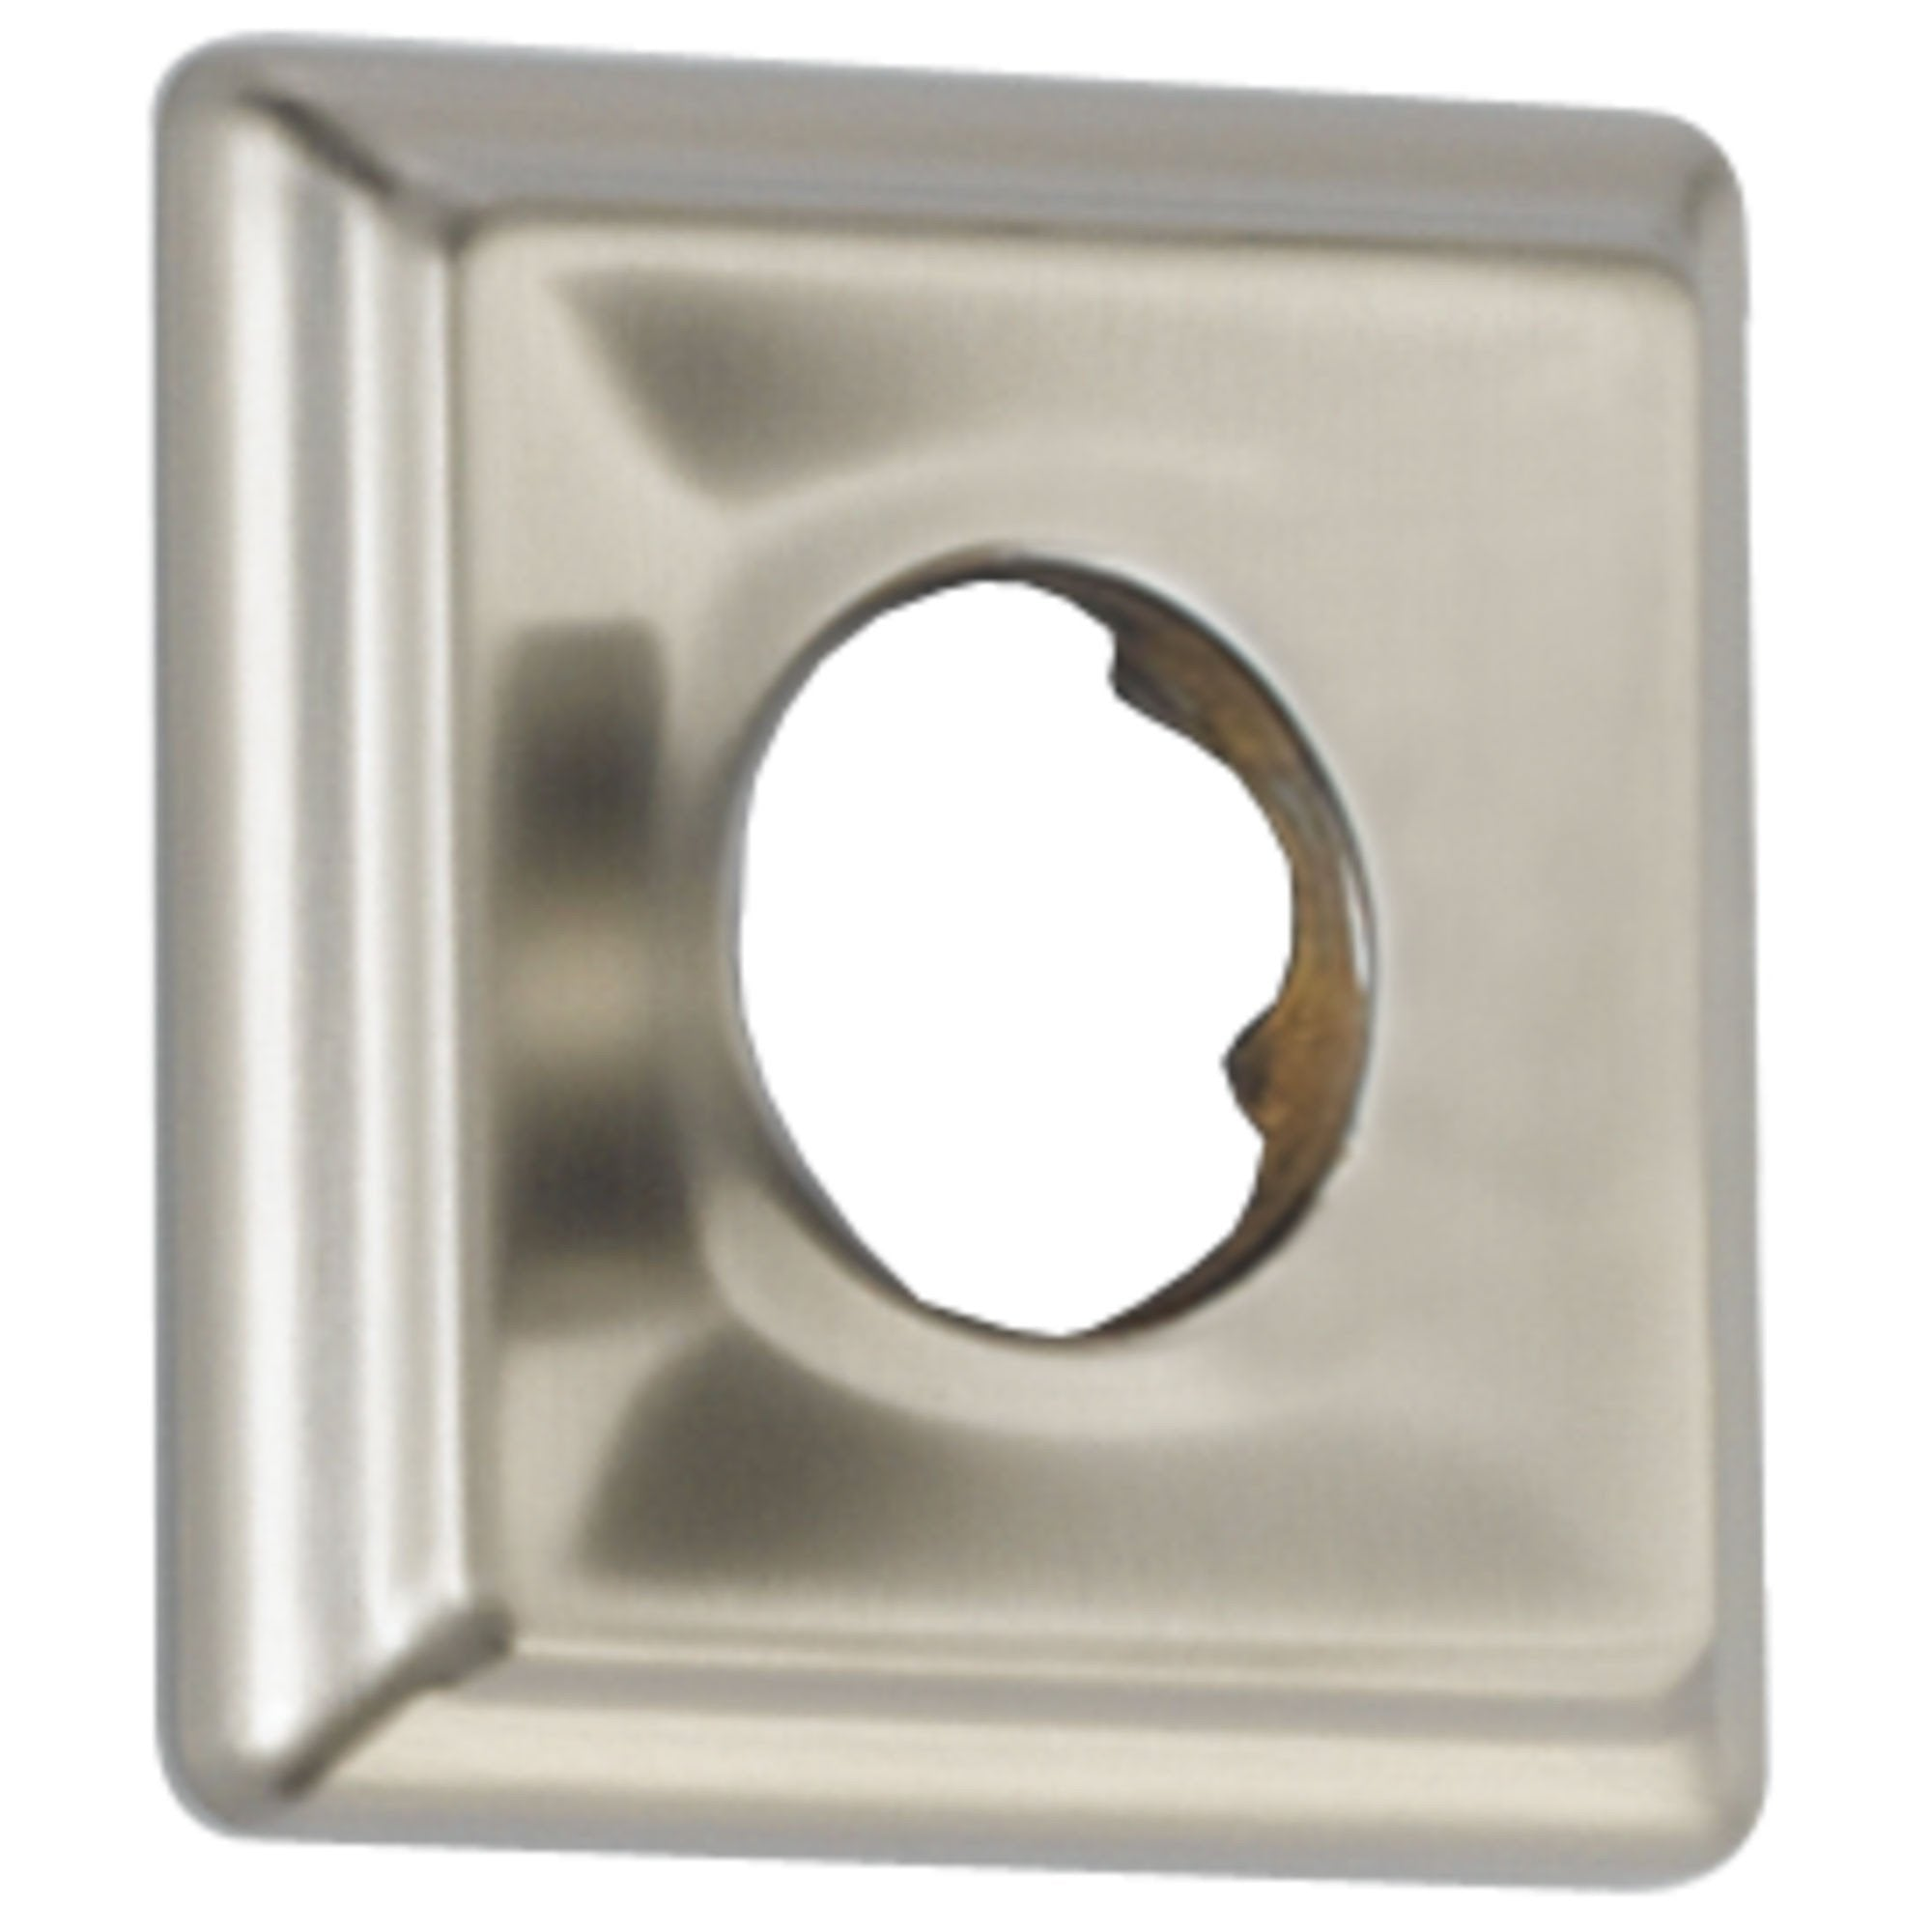 Delta Dryden Collection Stainless Steel Finish Square Shower Arm Flange 455645